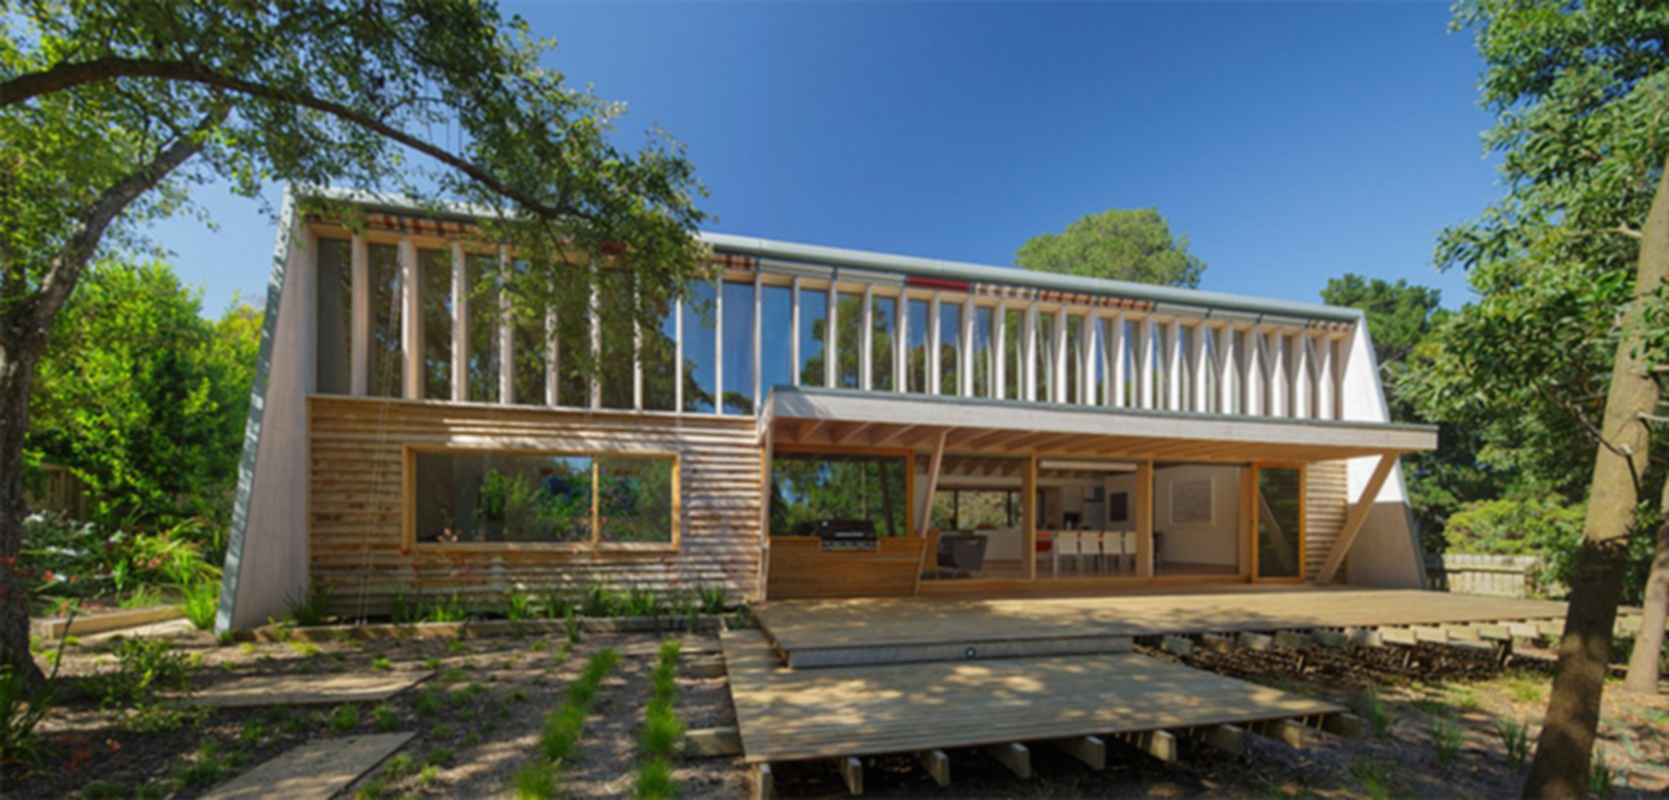 Sommers Beach Home - Exterior